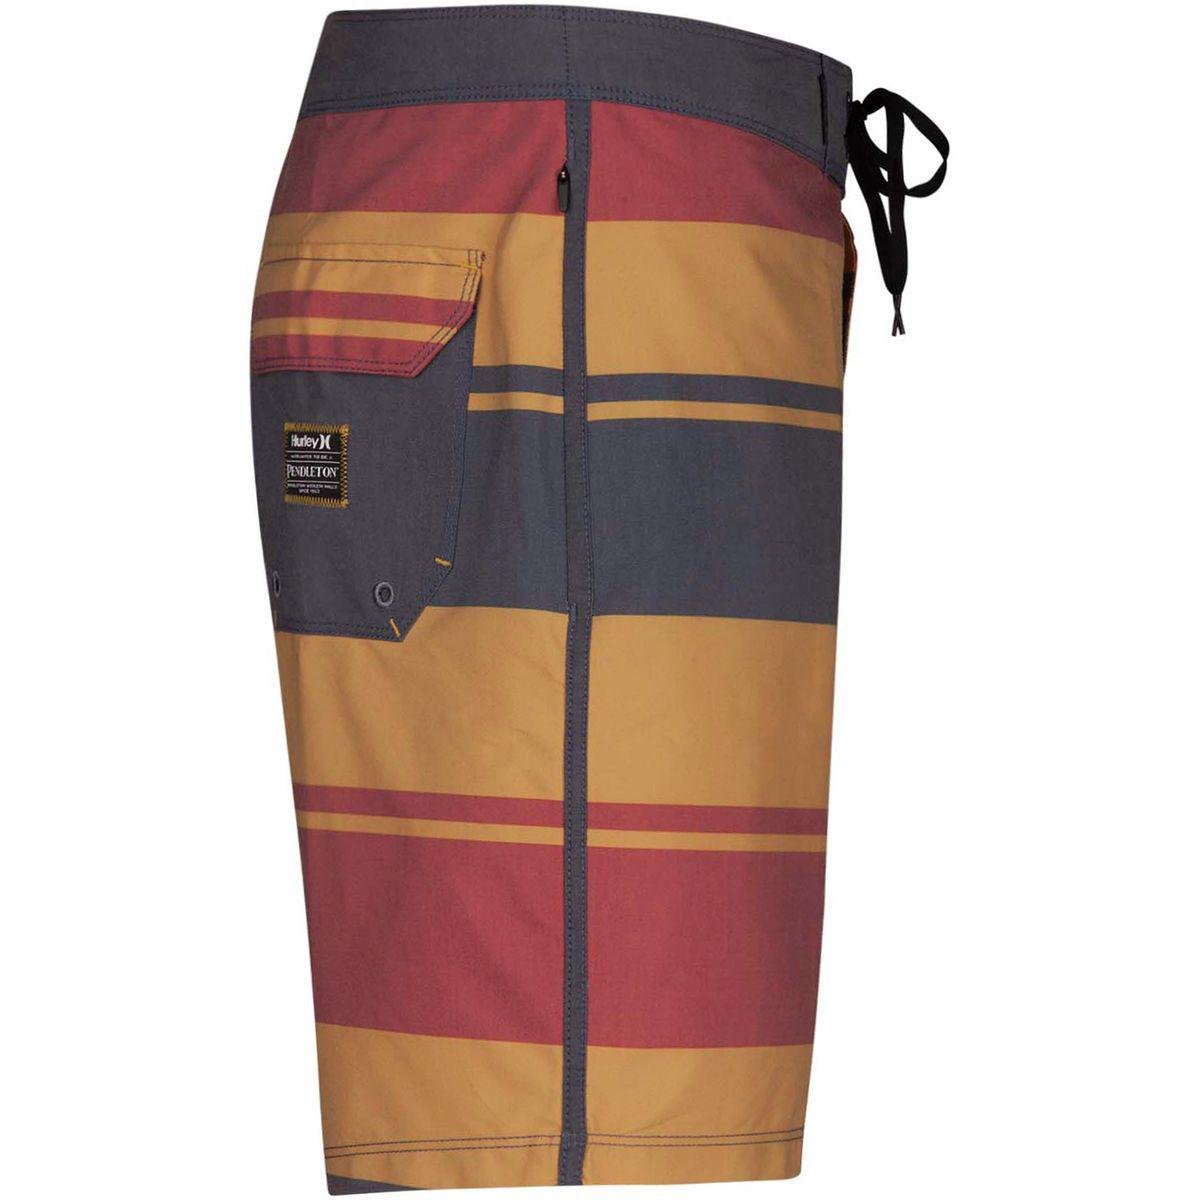 84b0db1f14 Lyst - Hurley X Pendleton Yellowstone Beachside 18in Board Short for Men